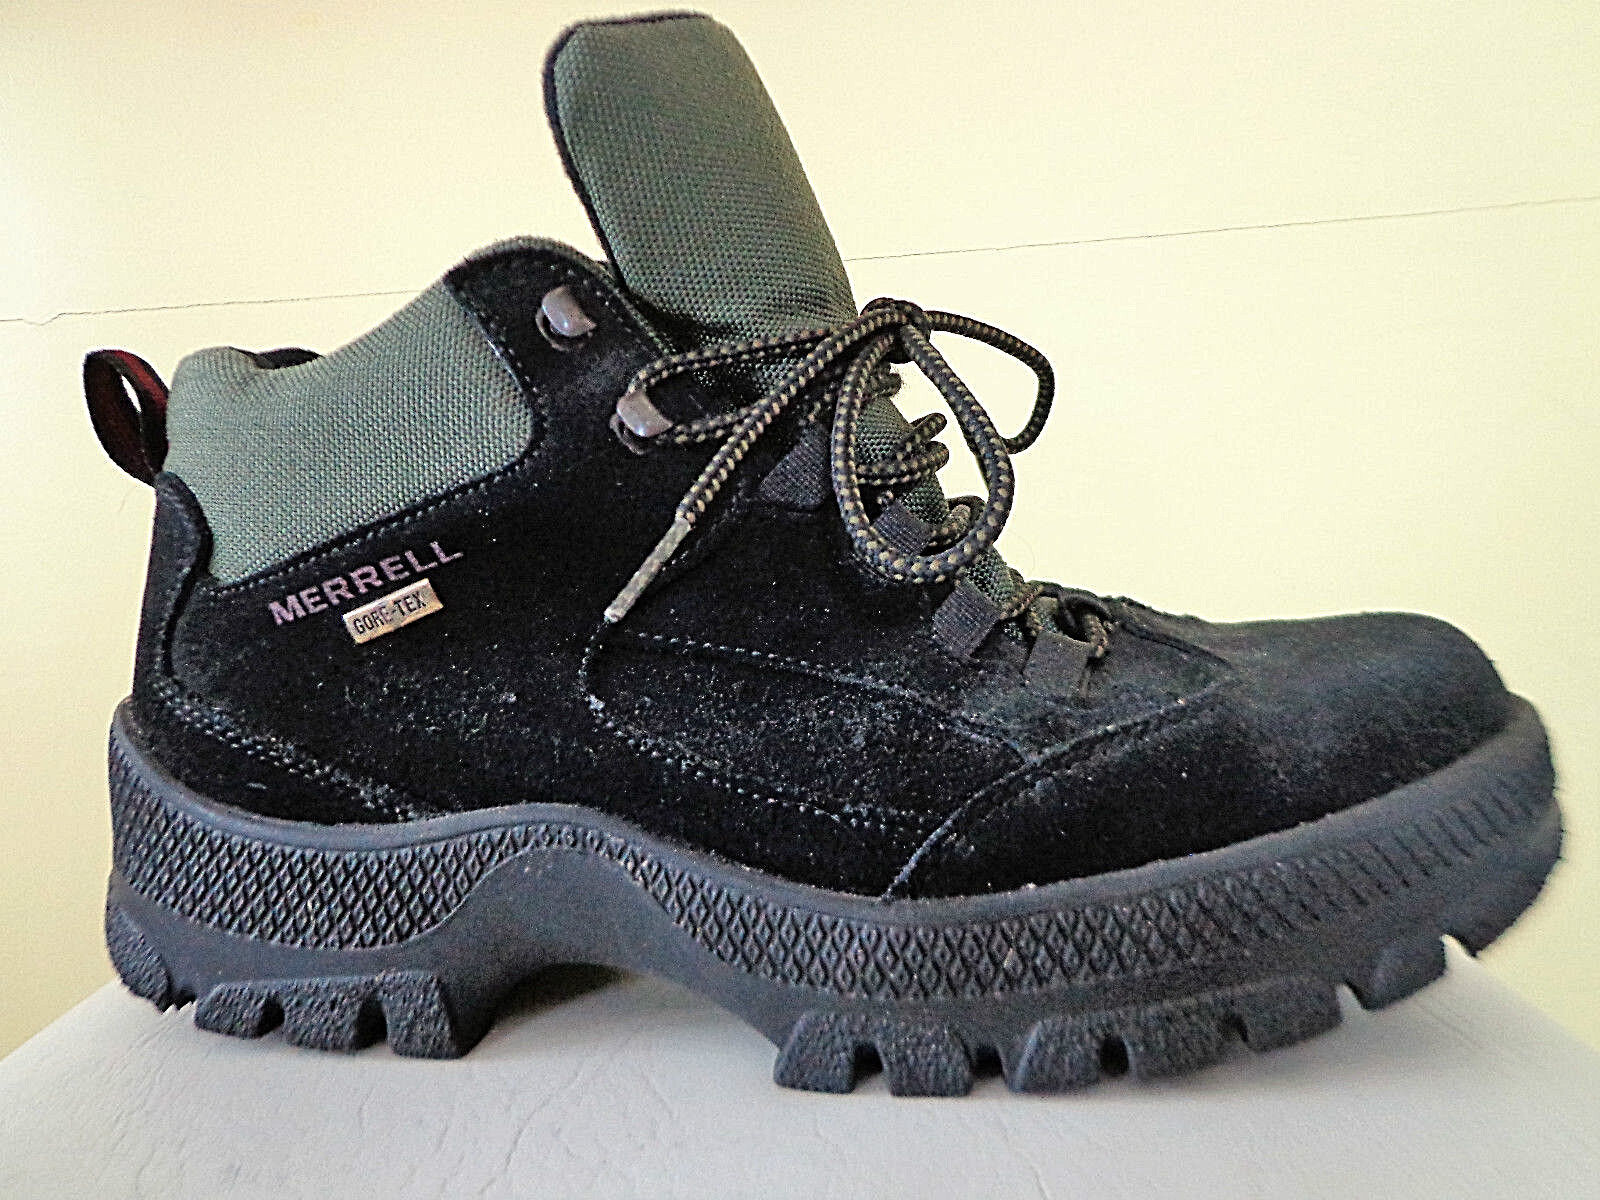 Merrell shoes Womens Size 40 Hiking  shoes Outdoor Leisure  popular